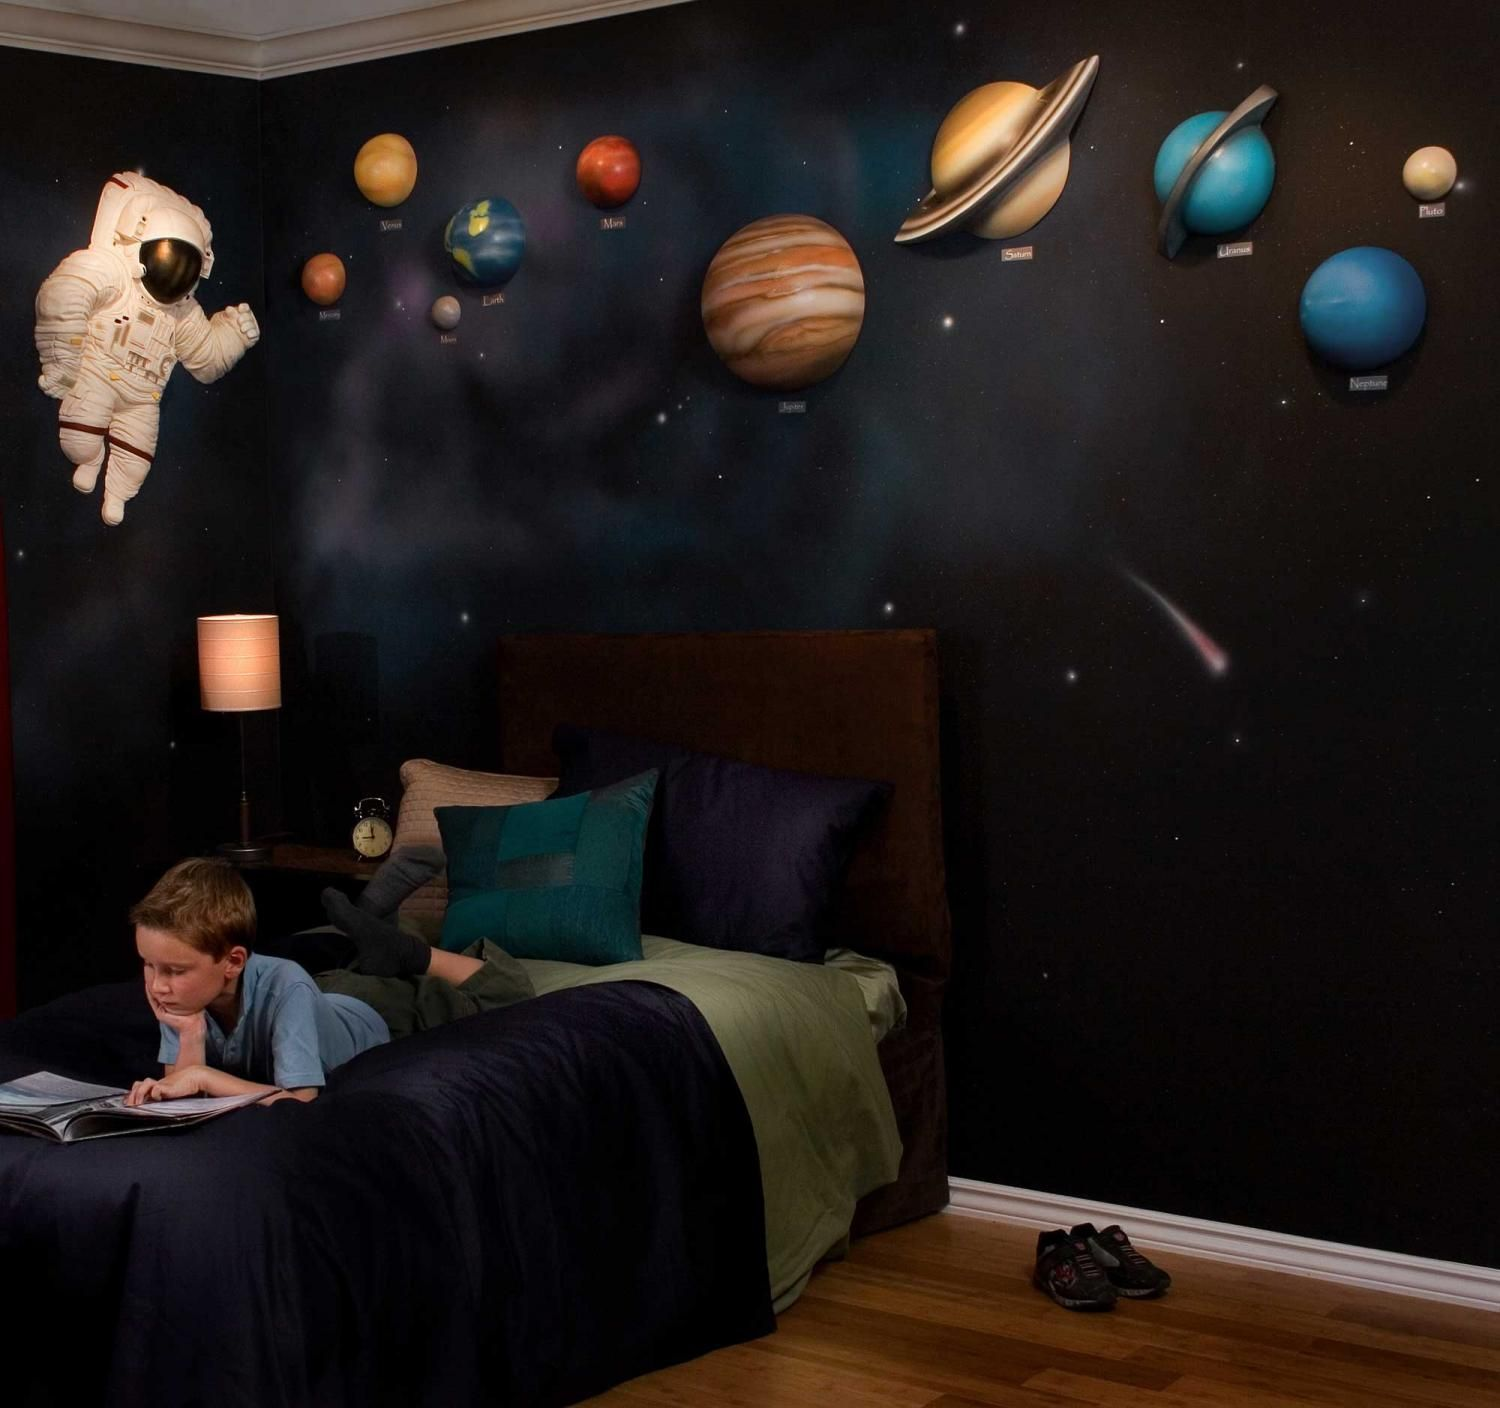 Solar System With Space Astronaut 3D Wall Art Decor By Beetling Design |  .php Part 76